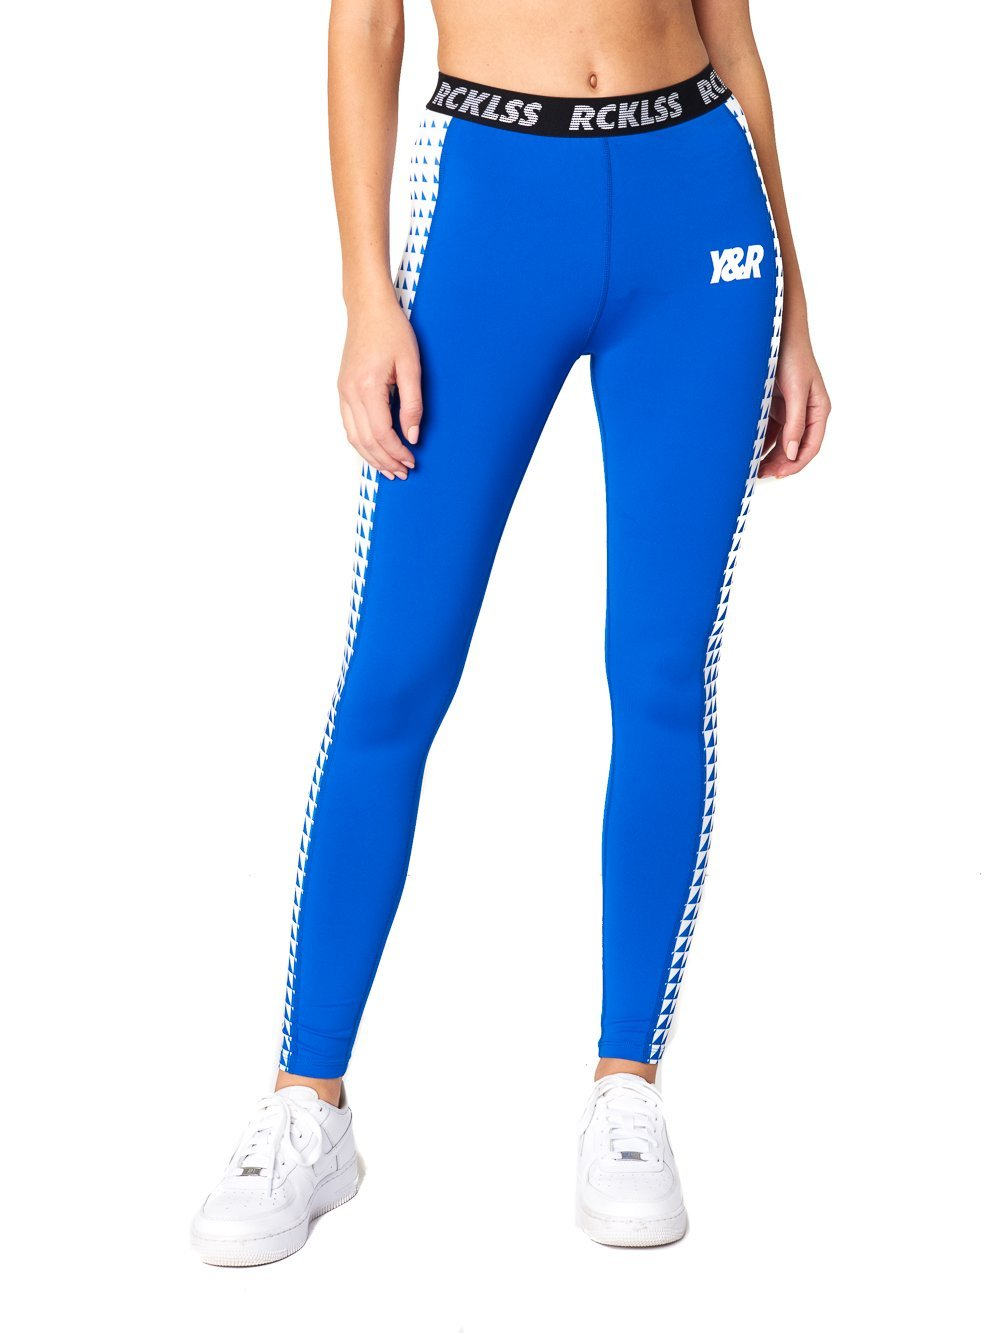 Reckless Girls Womens - Activewear - Leggings Natalie Leggings- Blue